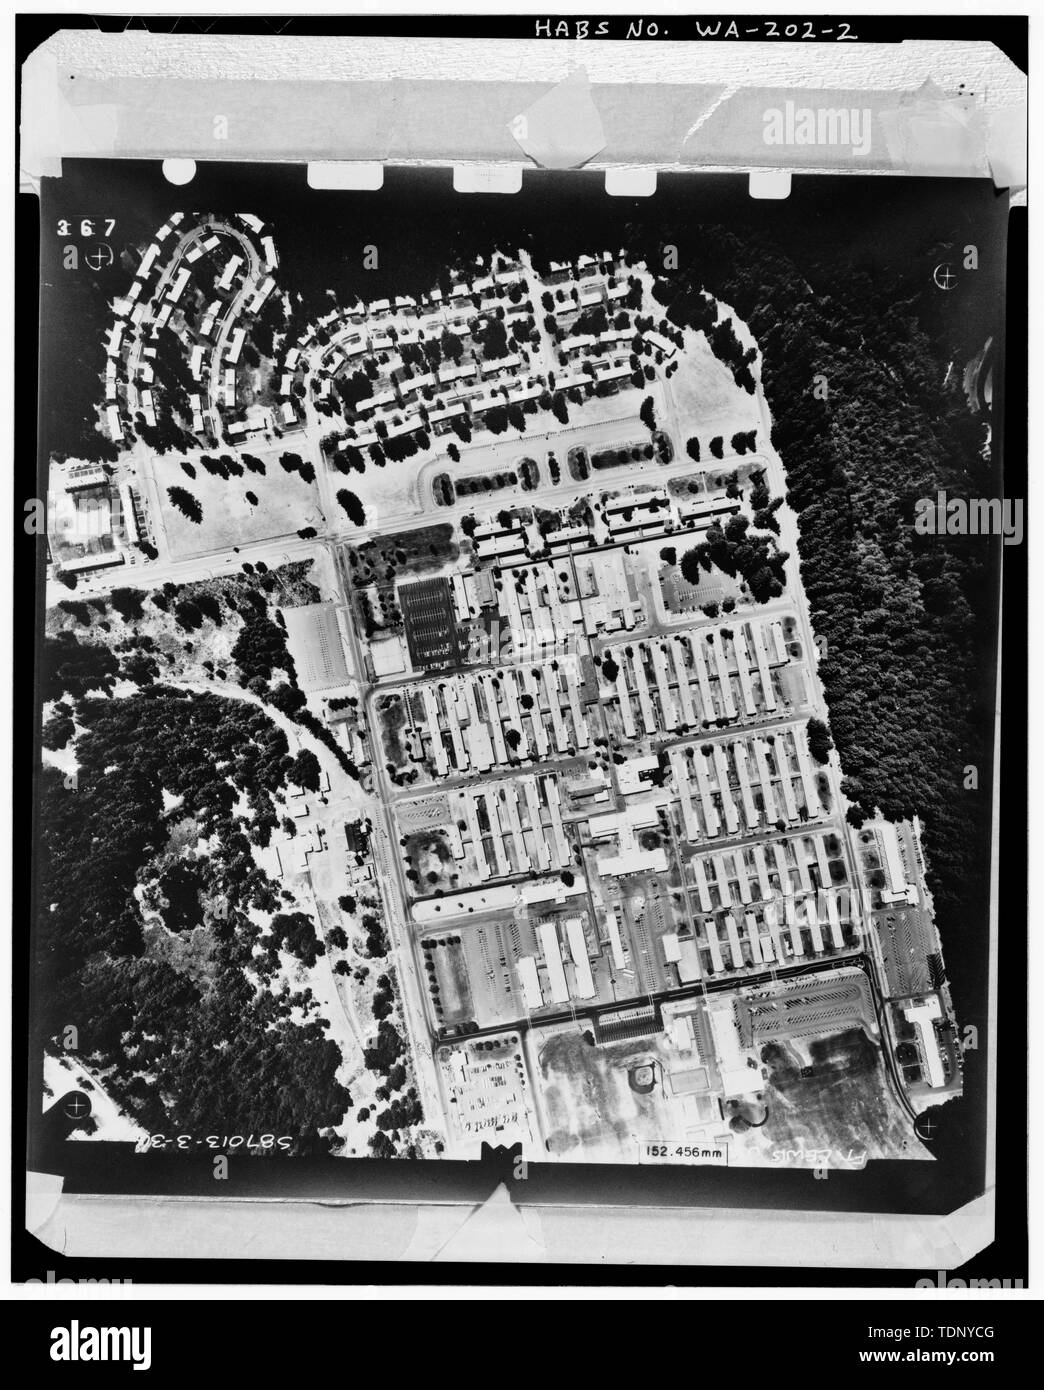 Photocopy of an aerial plan view photograph of Madigan Hospital taken on August 9, 1987. HABS negative is a 4x5' copy negative made from original black and white photograph in the collection of the U.S. Army Corps of Engineers, Seattle District Office, Seattle, WA. - Madigan Hospital, Bounded by Wilson and McKinley Avenues and Garfield and Lincoln Streets, DuPont, Pierce County, WA; Sawyer, Philip; Steinbrueck, Victor E; Boespflug, John F; Maul, David, transmitter; Price, Virginia B, transmitter - Stock Image